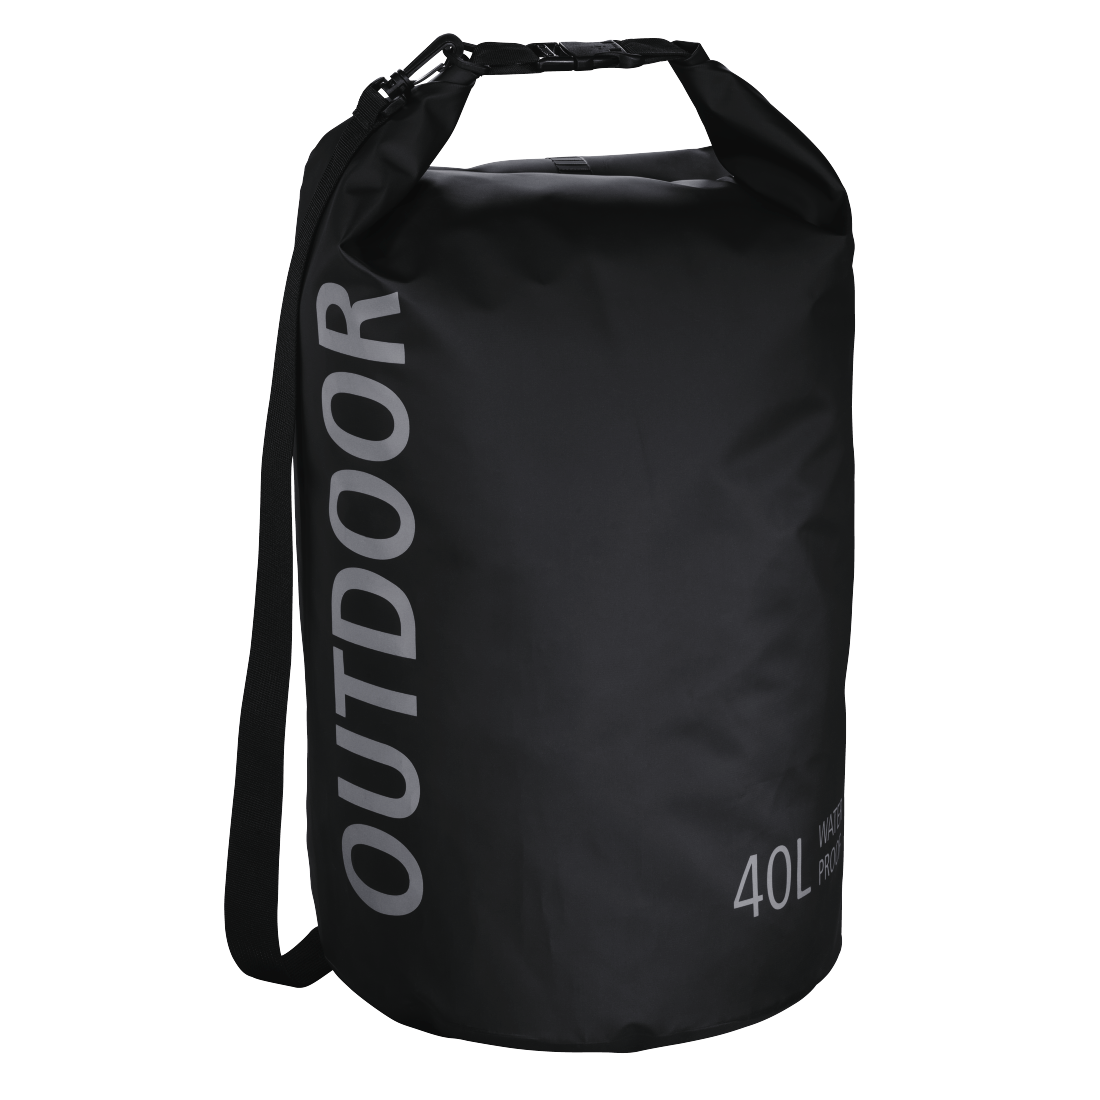 abx High-Res Image - Hama, Outdoor Bag, 40 l, black